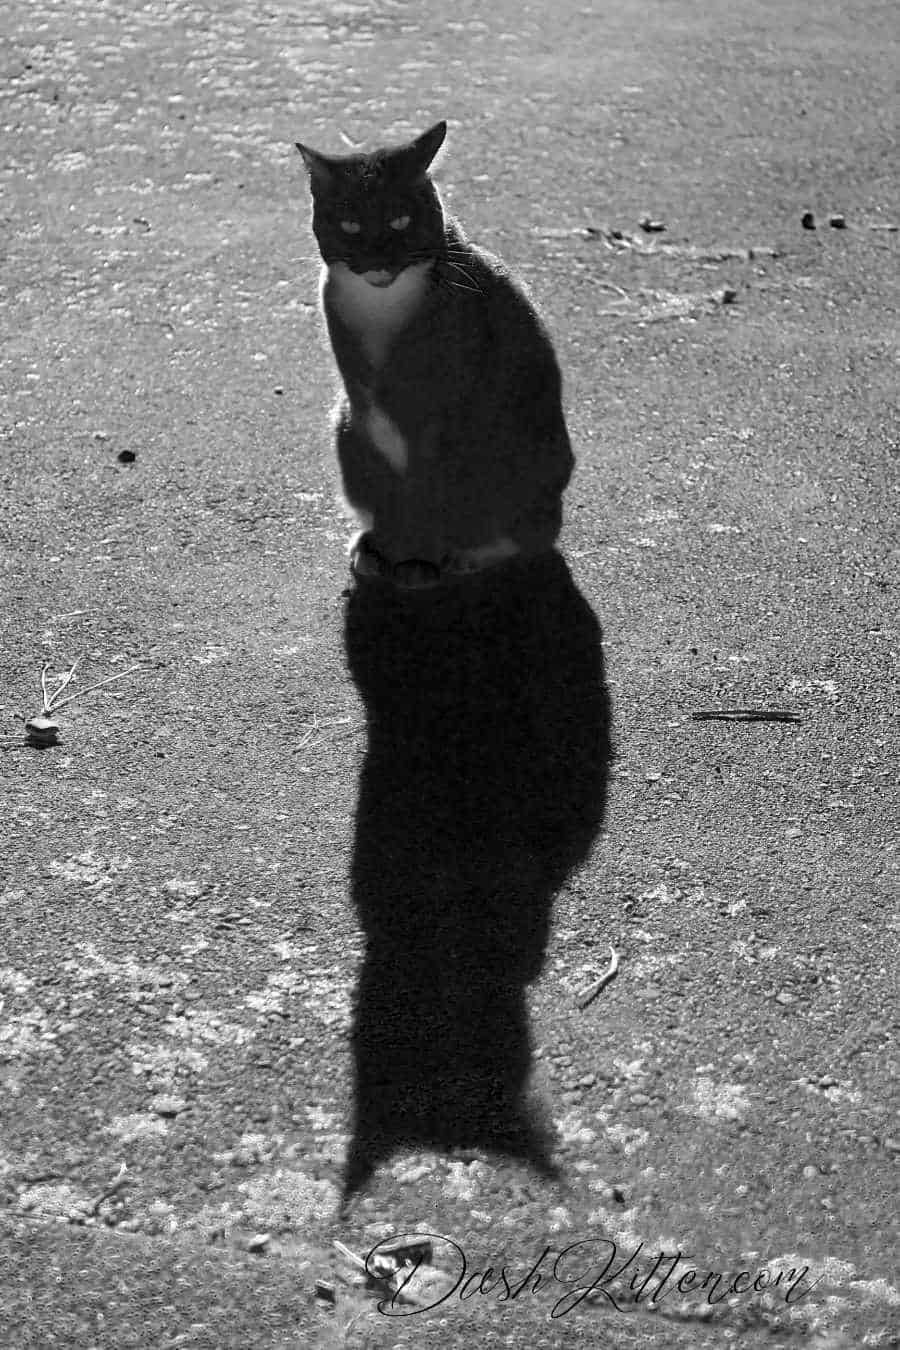 Shadows can make a big impact on your black and white pictures